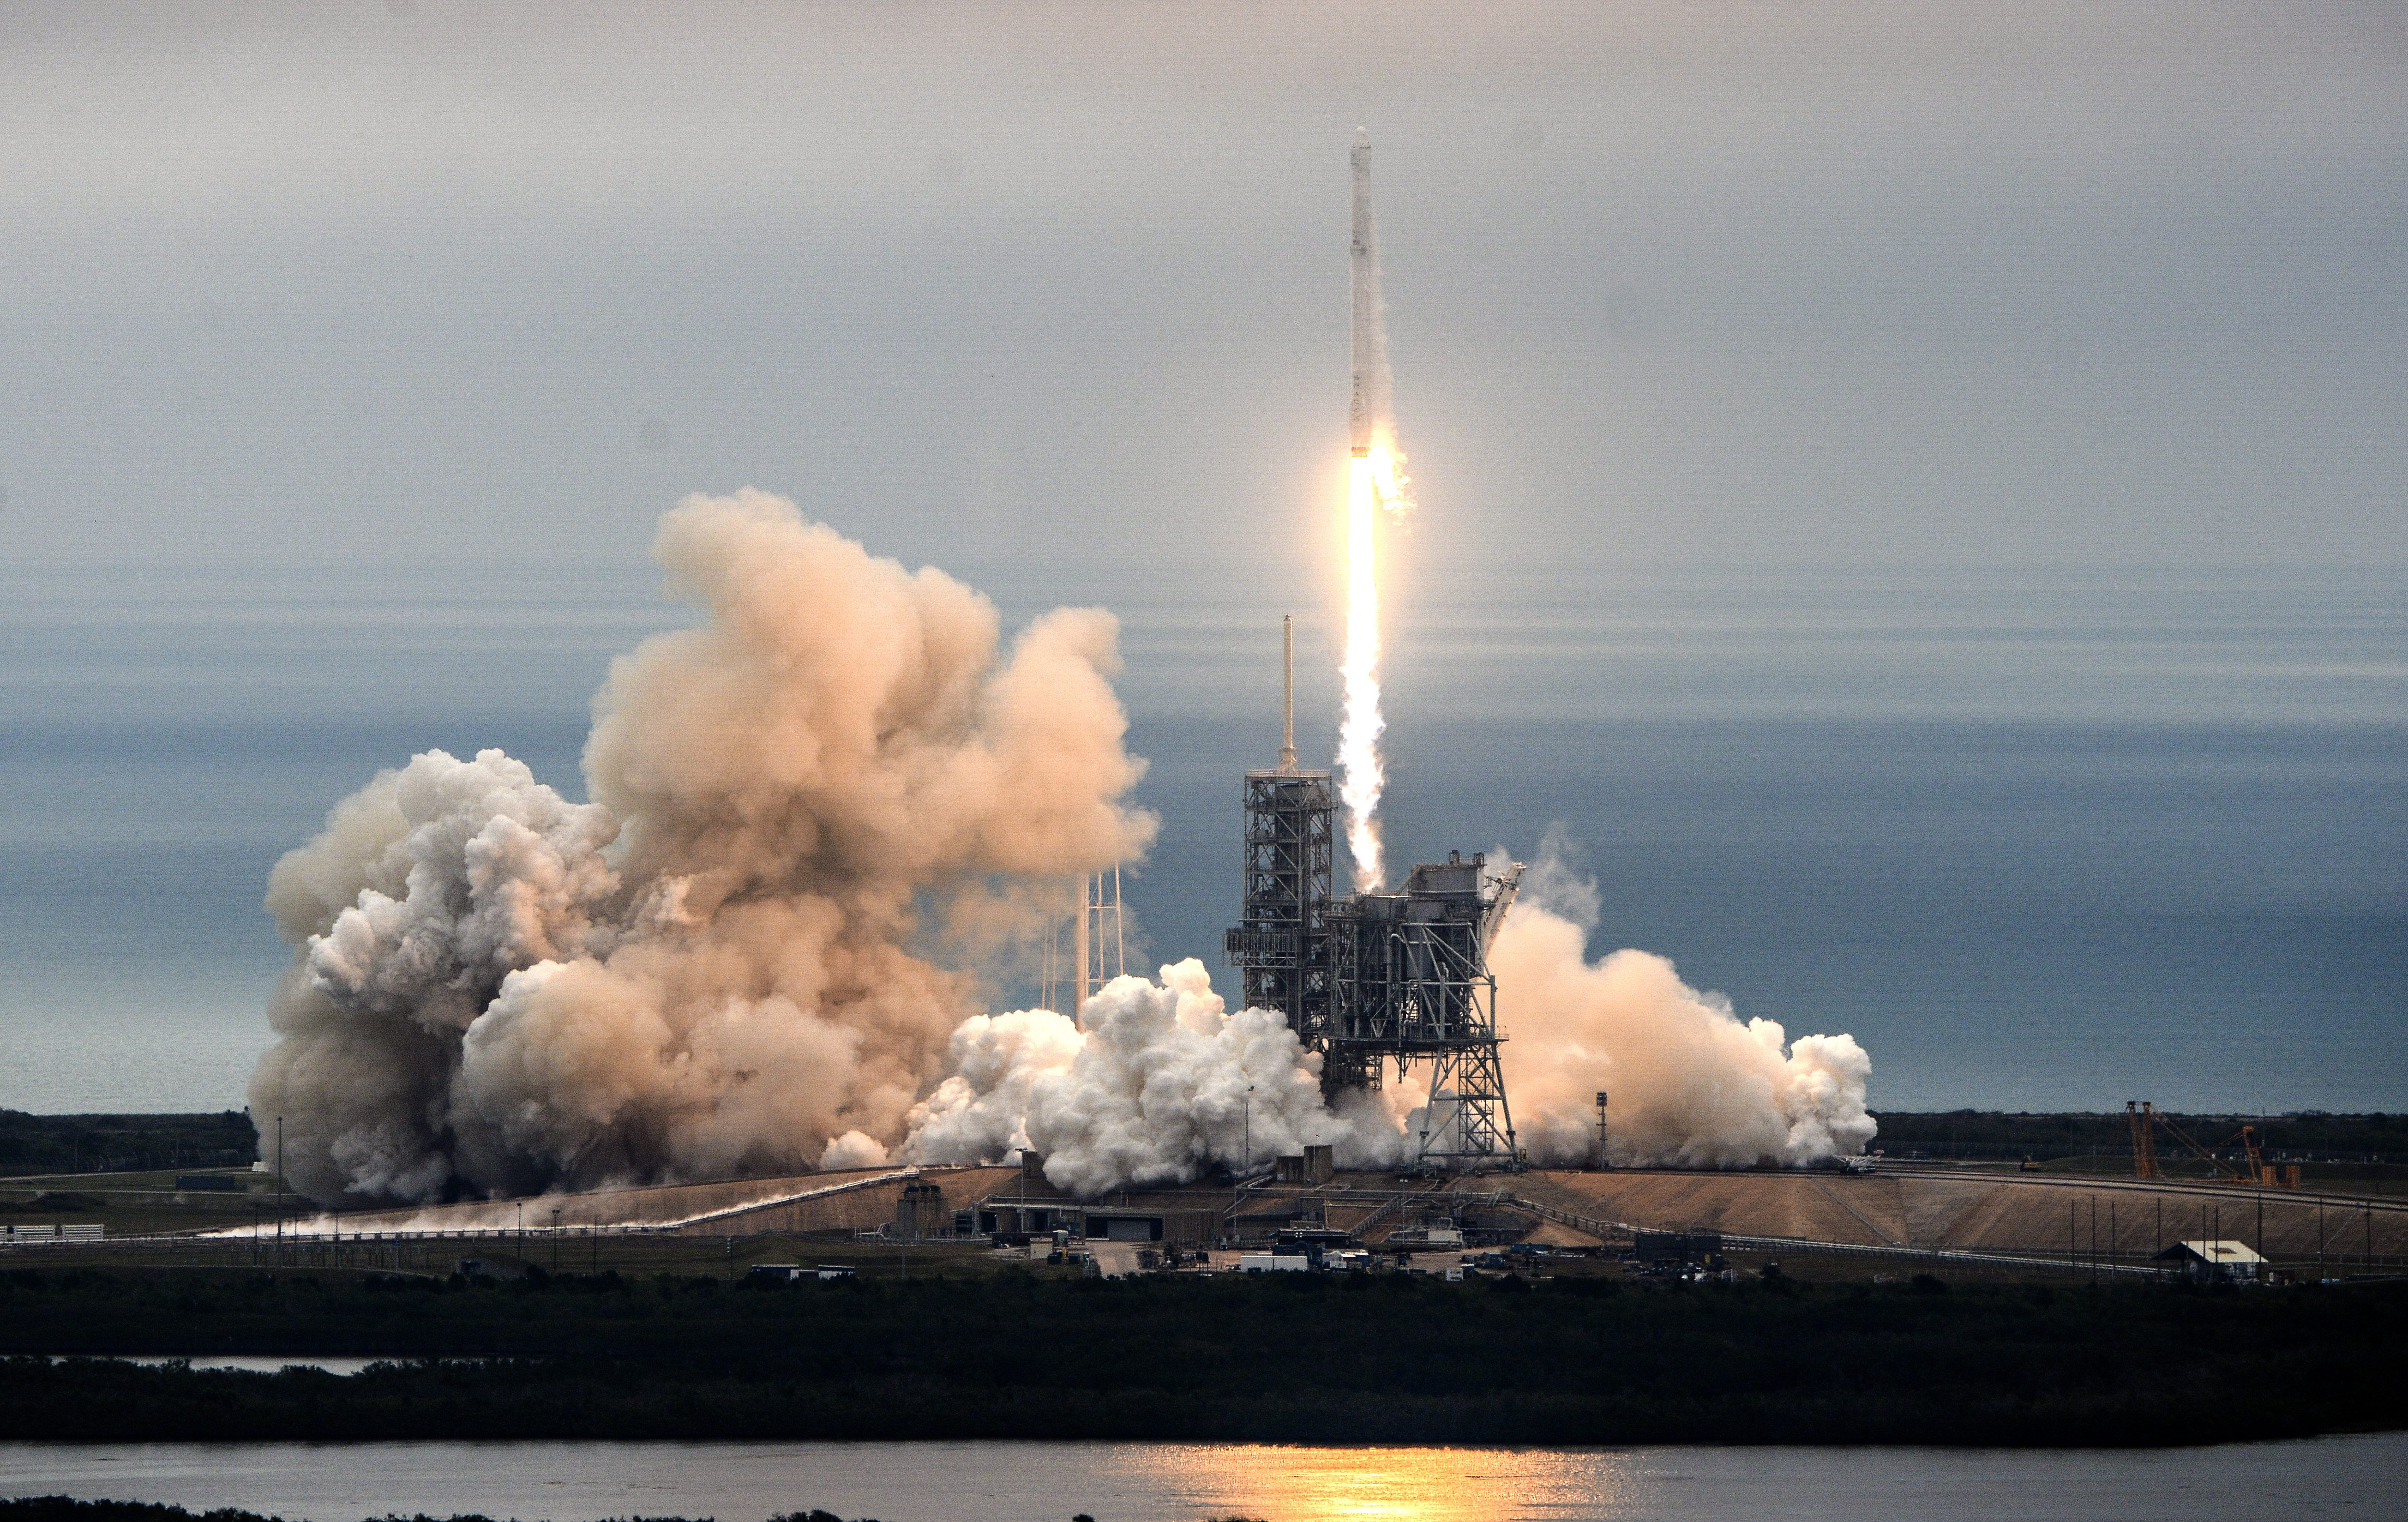 spacex launches rocket - HD5217×3297